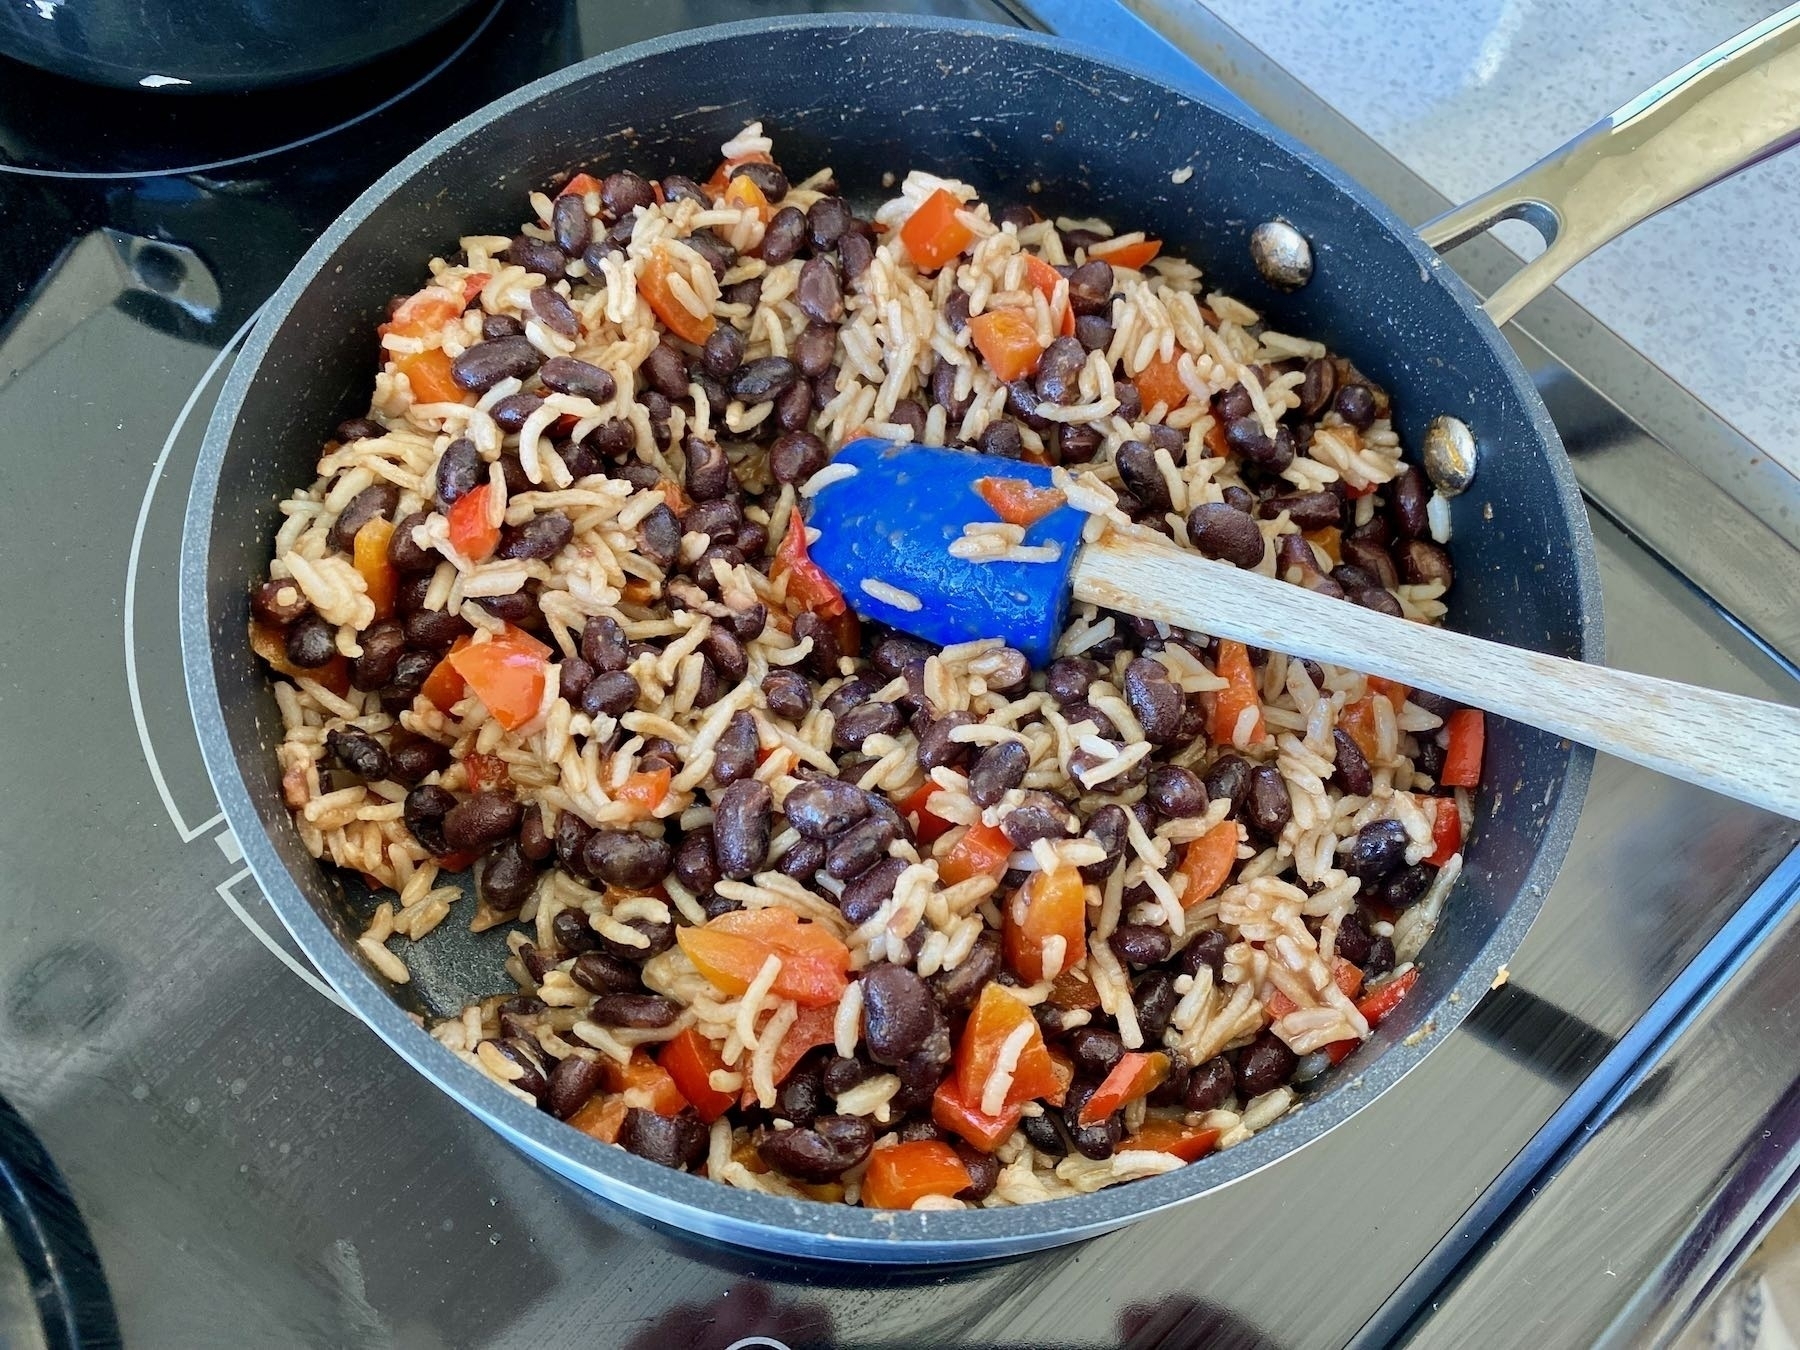 Beans and rice cooking in a frypan.